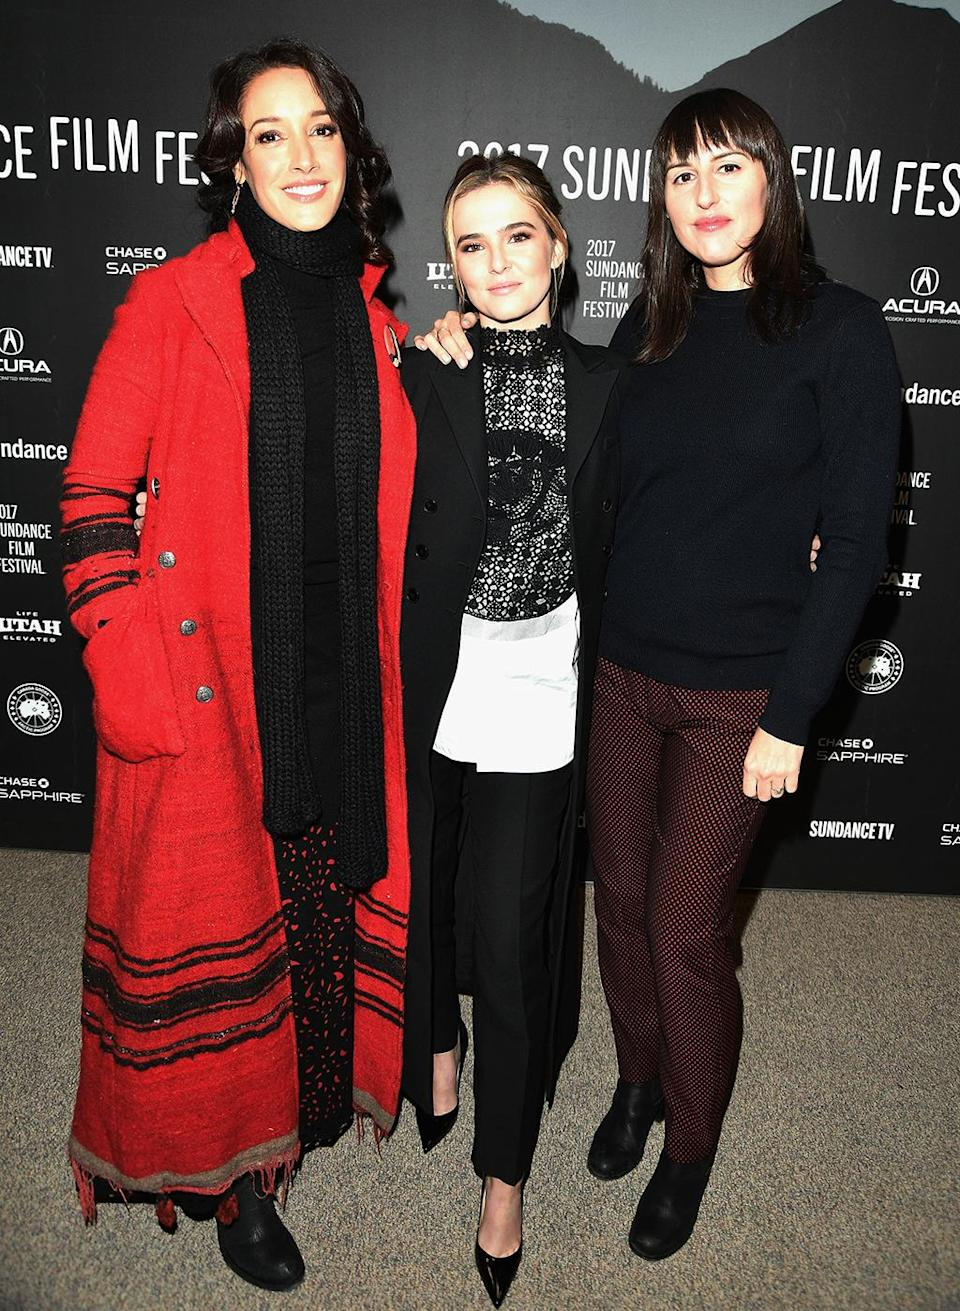 <p>The actresses pose with director Russo-Young at the 'Before I Fall' premiere on Jan. 21. (Photo: George Pimentel/Getty Images) </p>